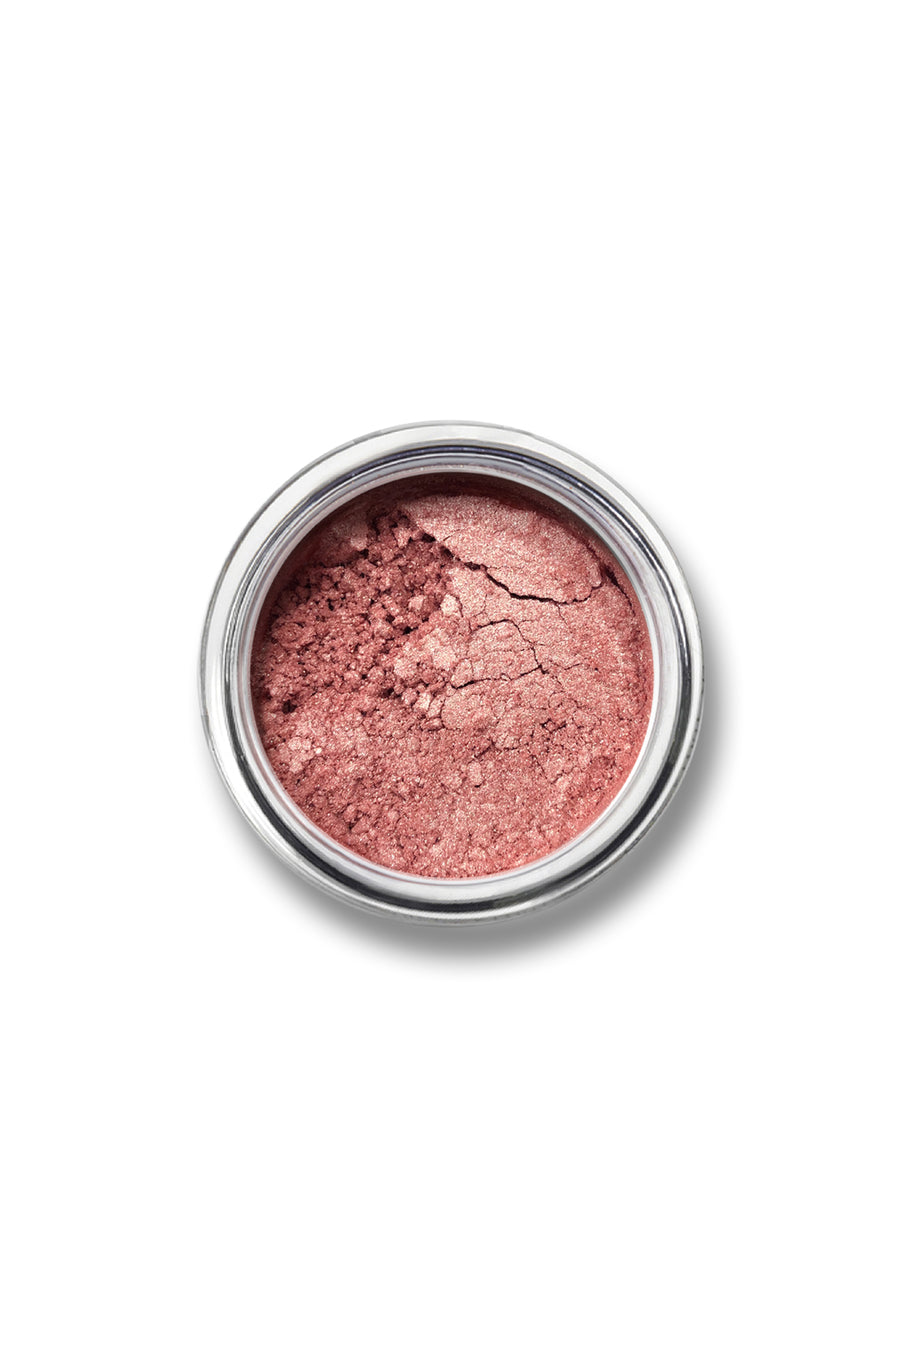 Shimmer Eyeshadow #27 - Rose Gold - Blend Mineral Cosmetics